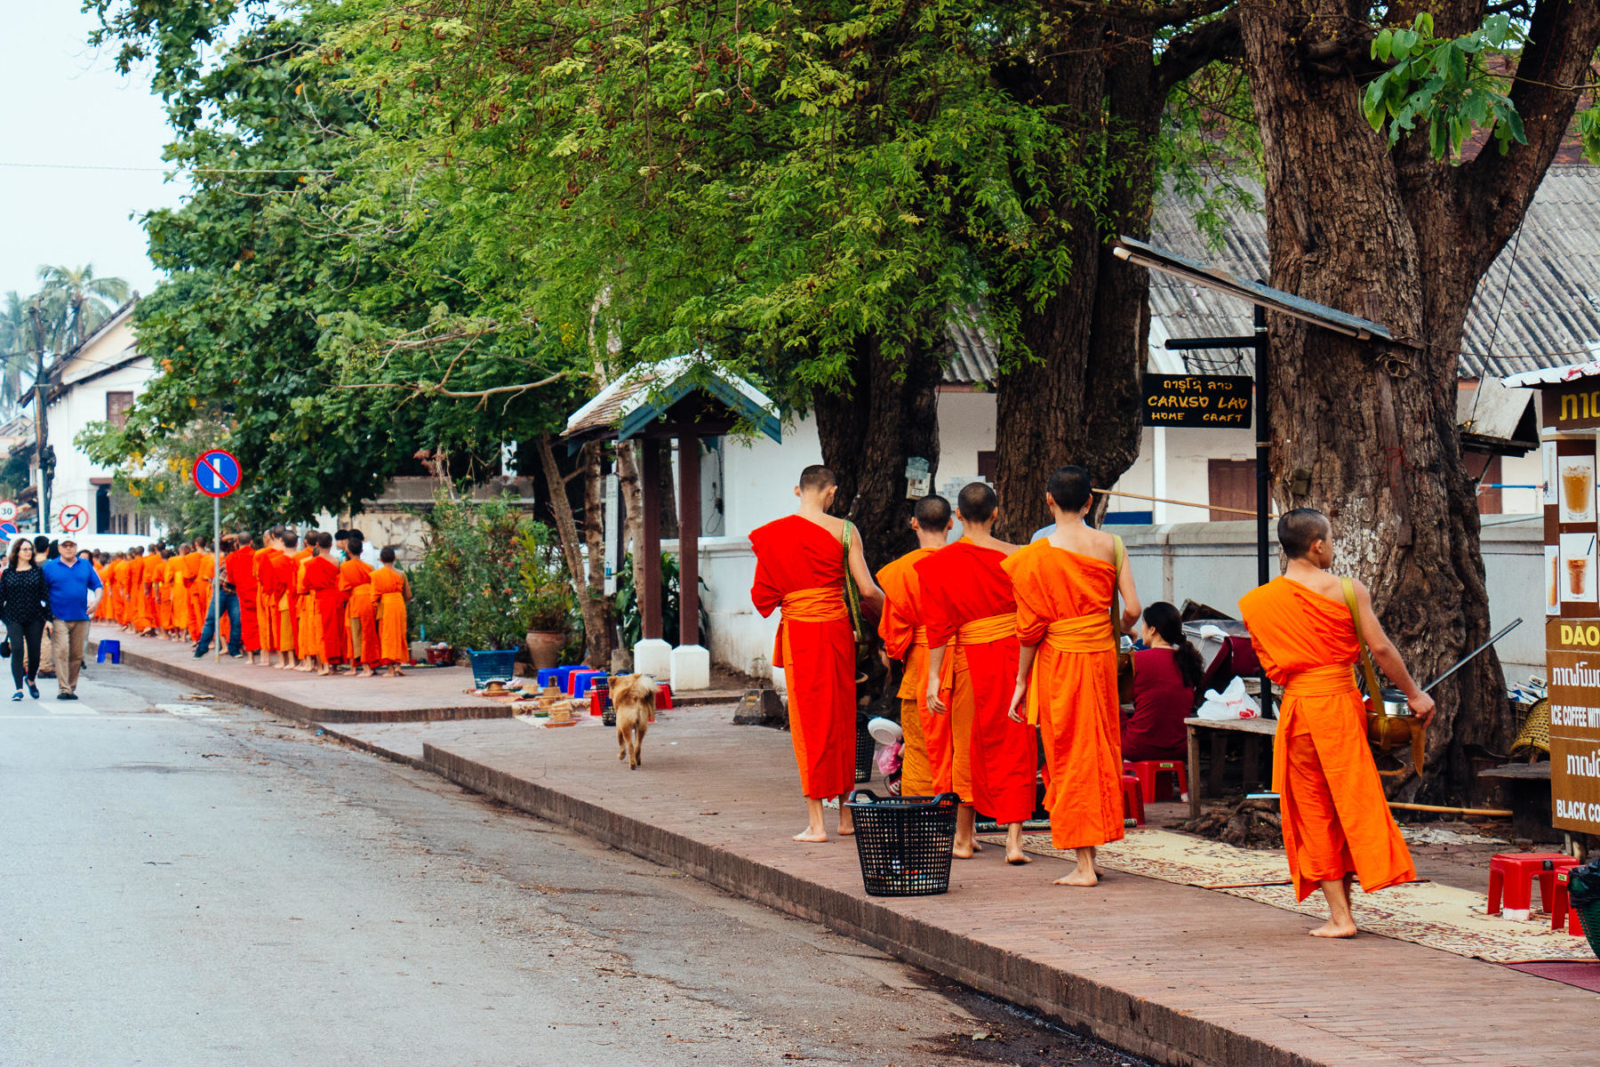 Monks walking, alms procession